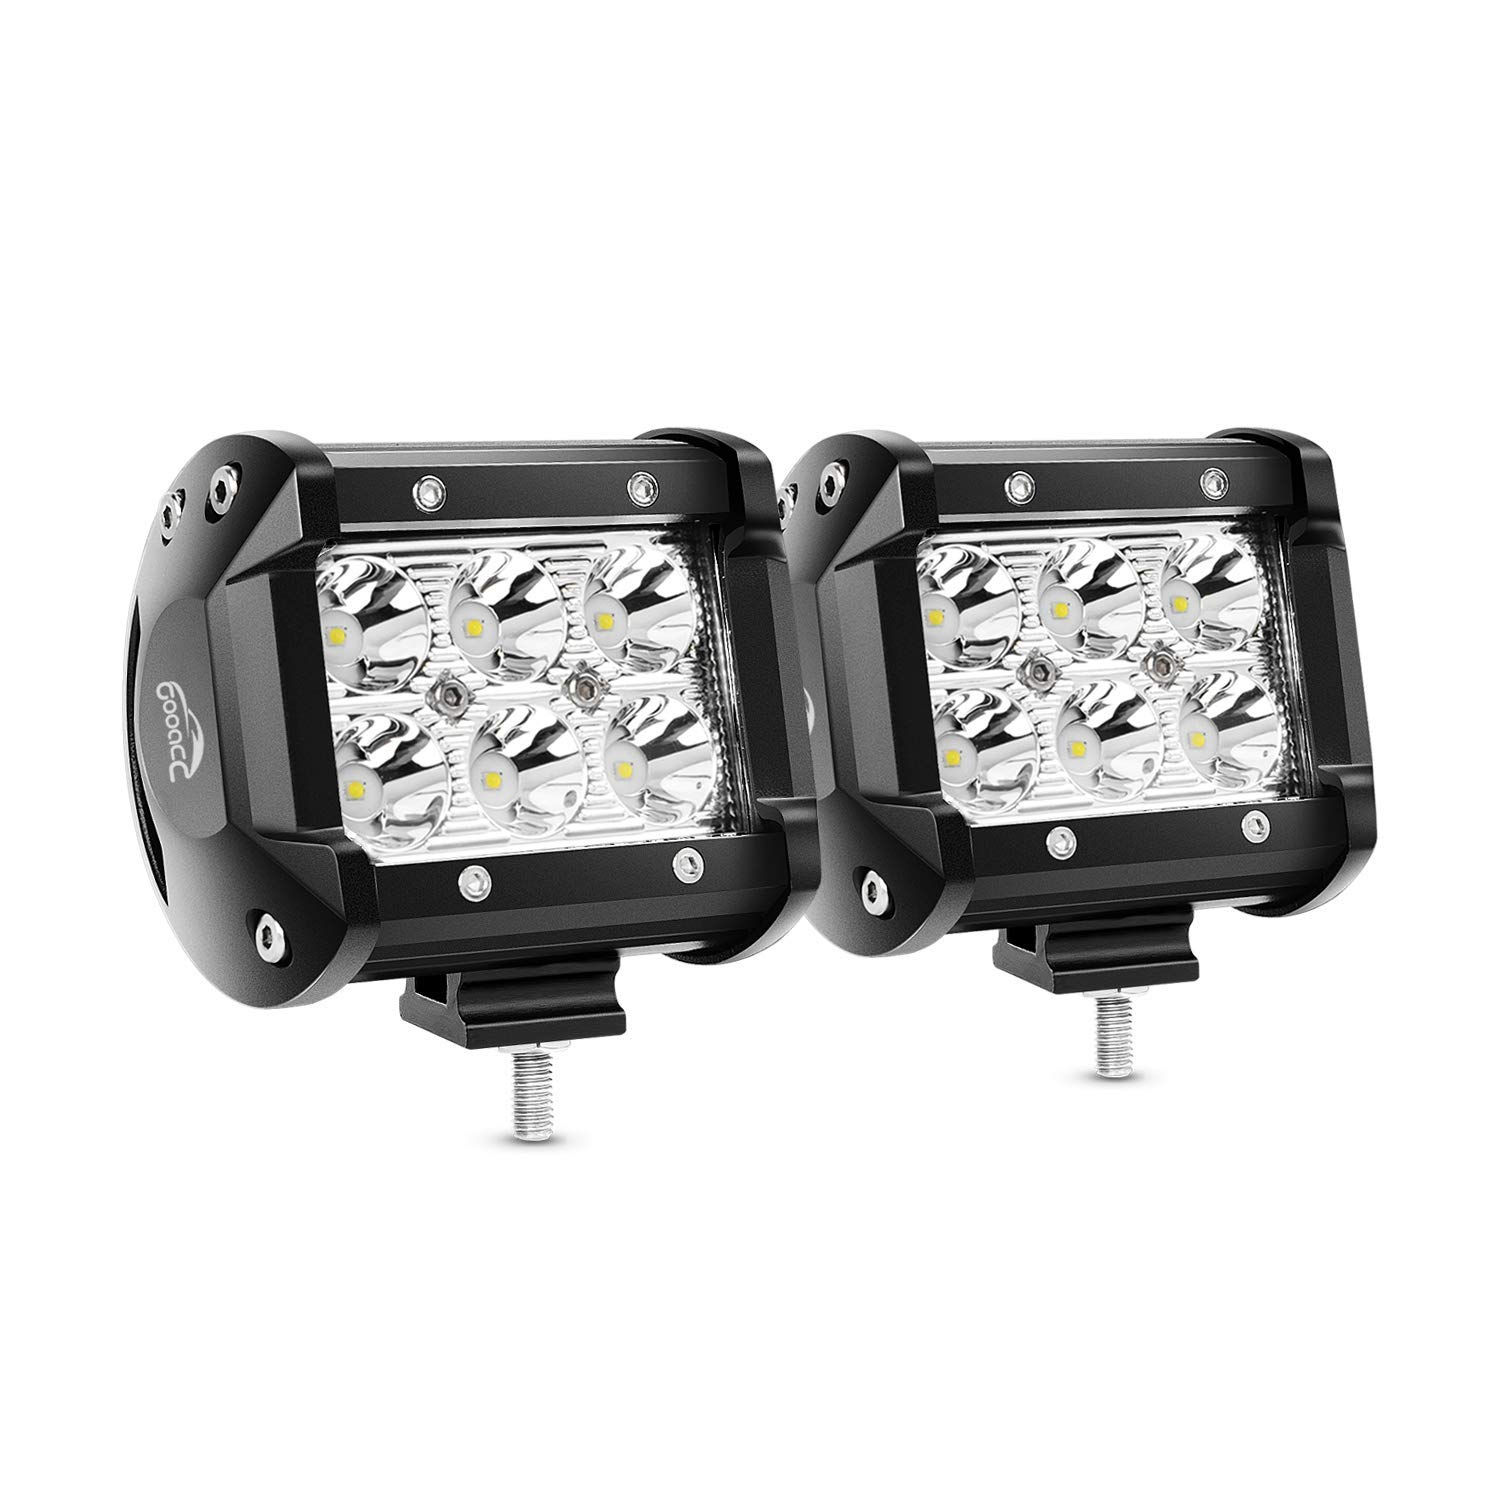 -Black LED Driver side WITH install kit 2007 Mack PINNACLE MID-RISE SLEEPER Side Roof mount spotlight 6 inch